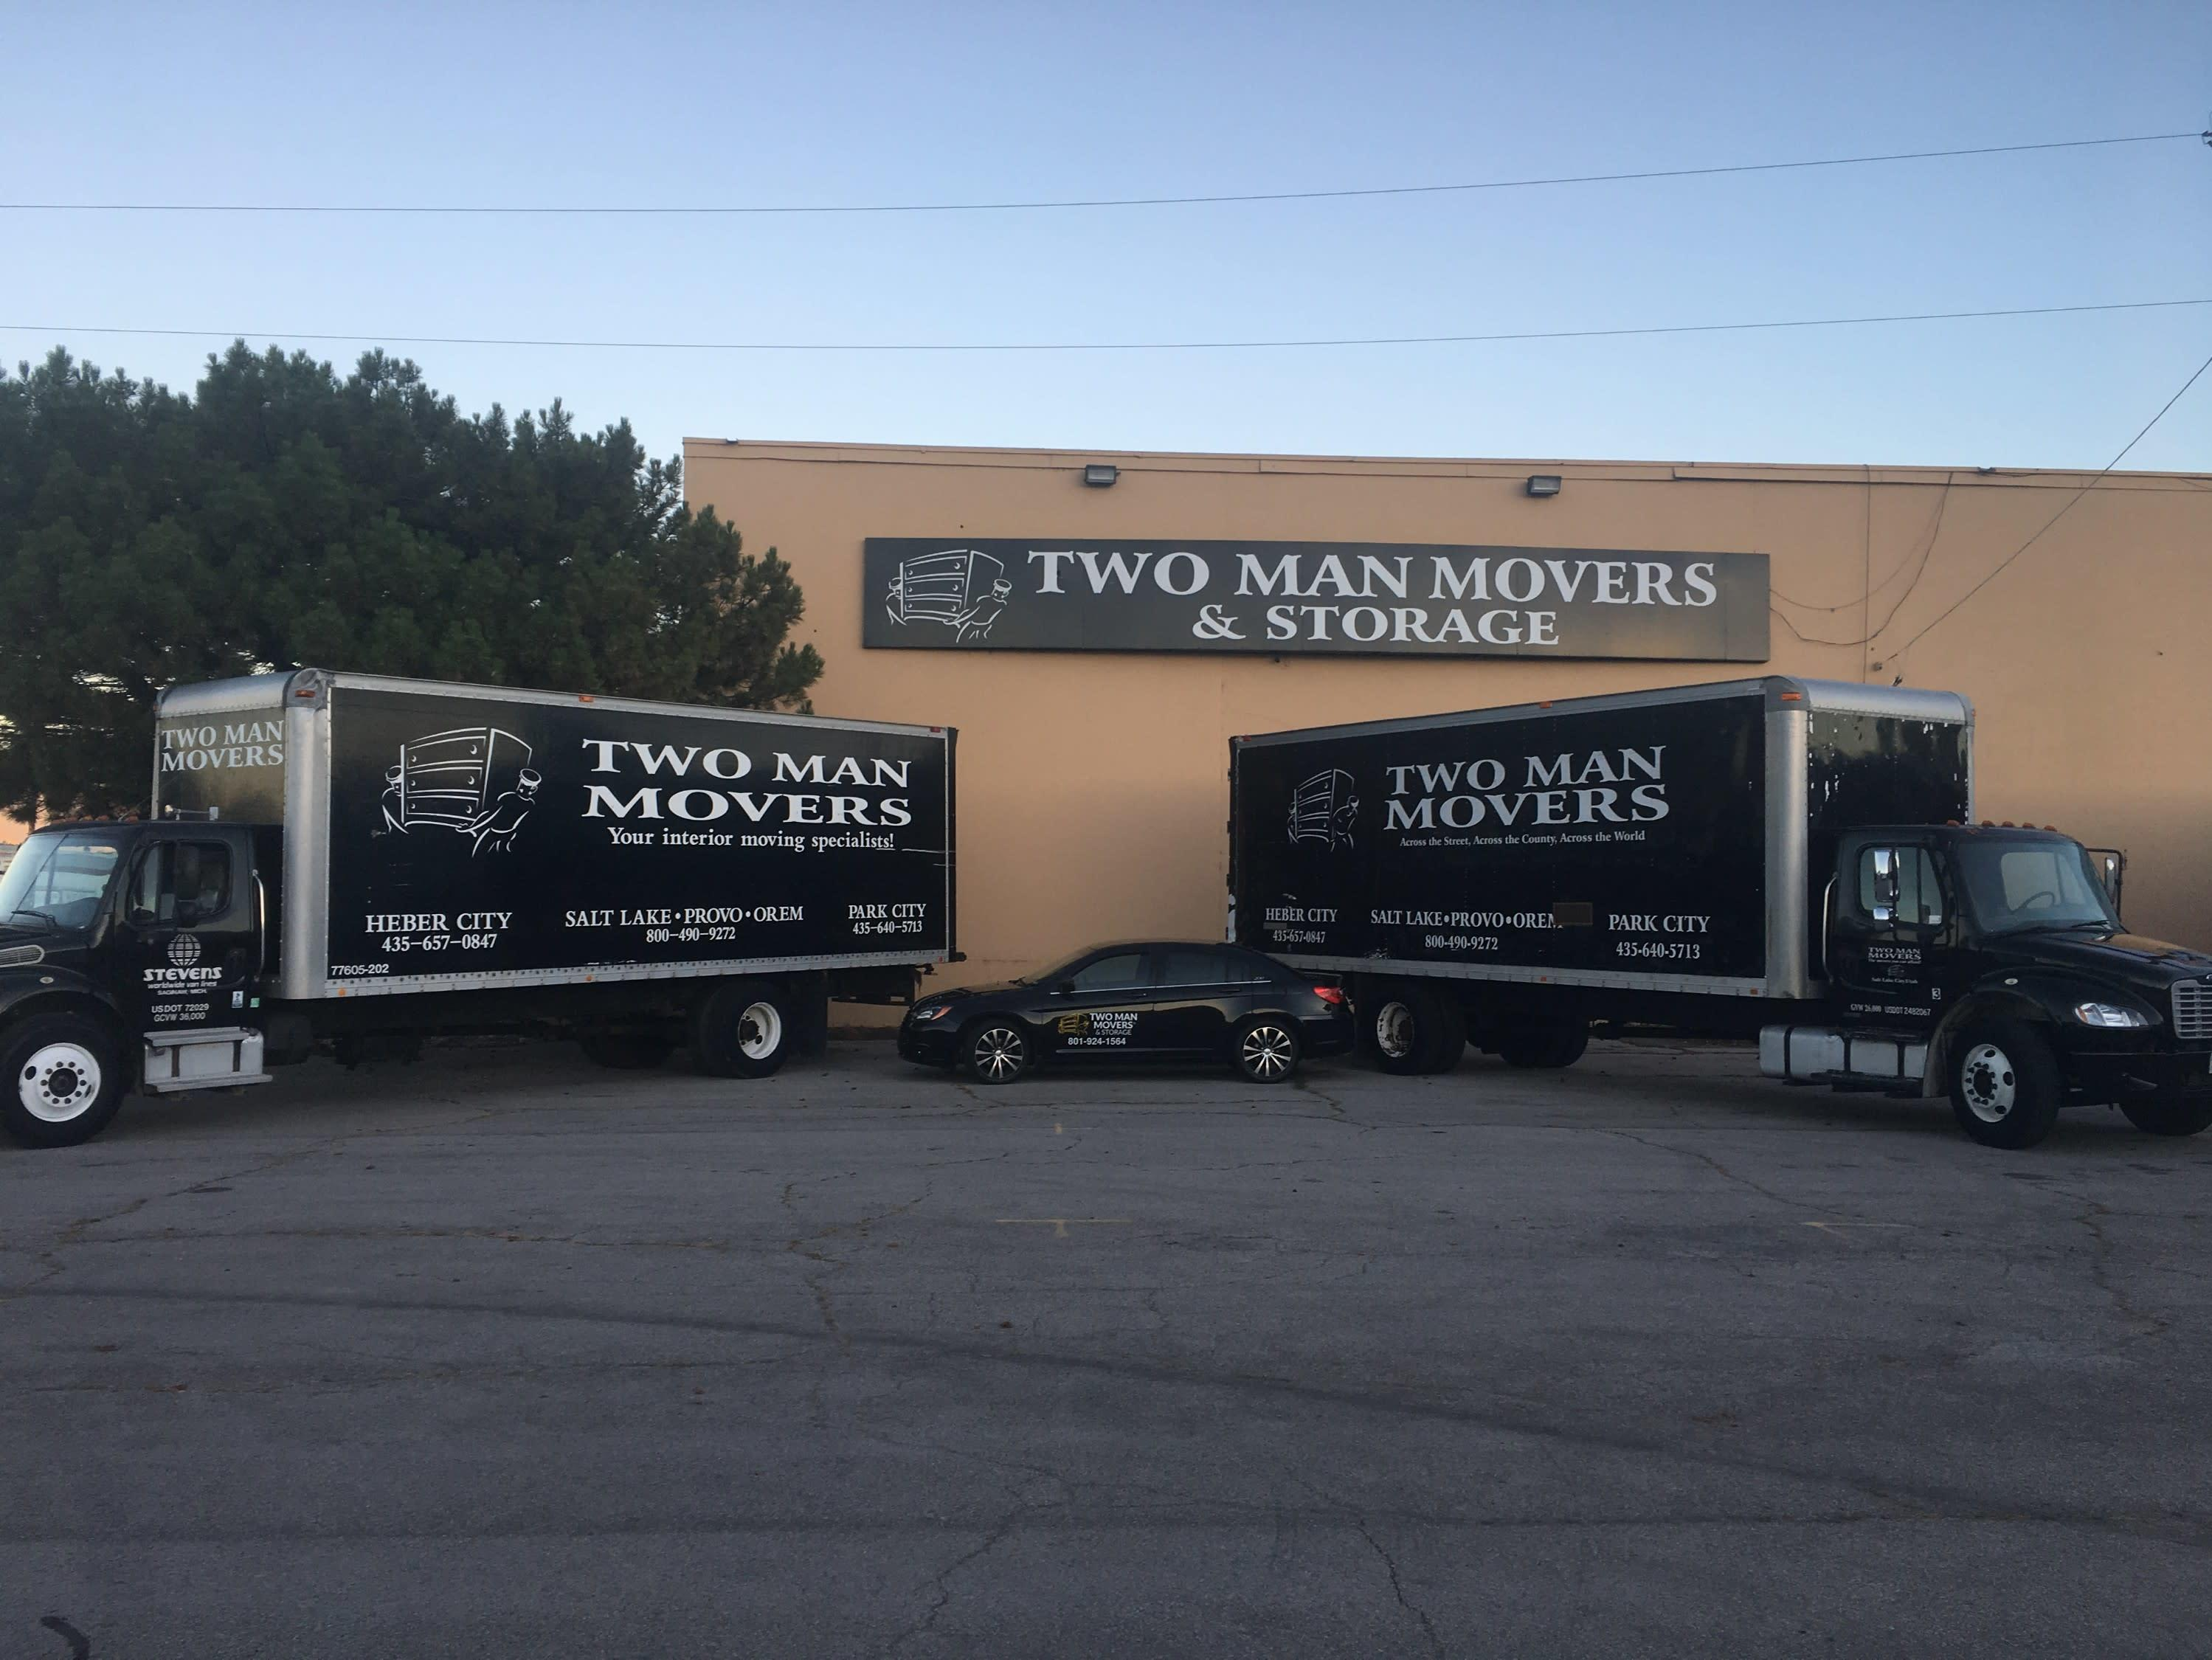 Two Man Movers Trucks and Sign